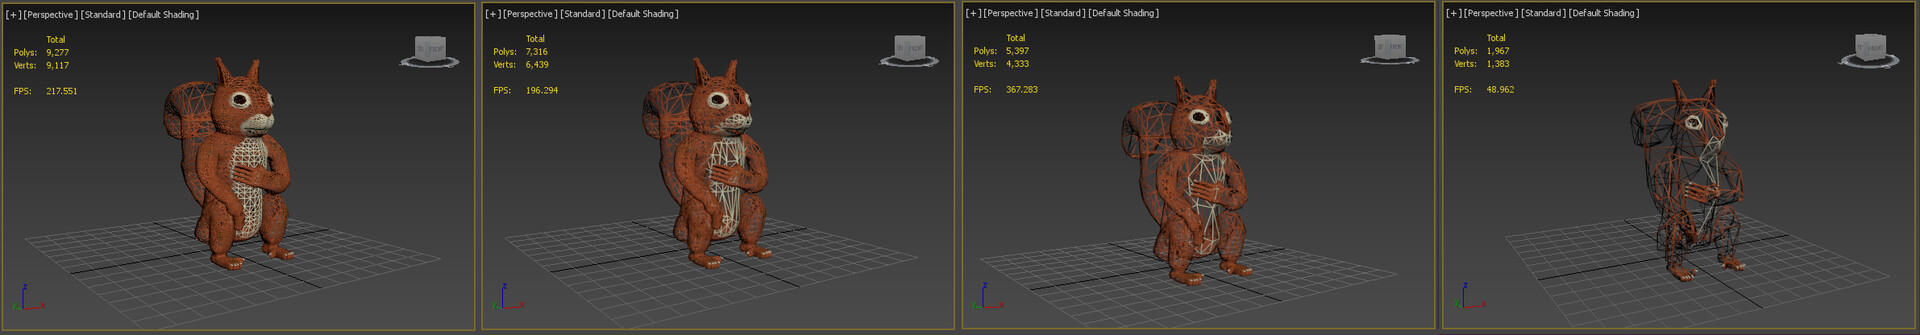 Levels of Detail Example (3DSMax)